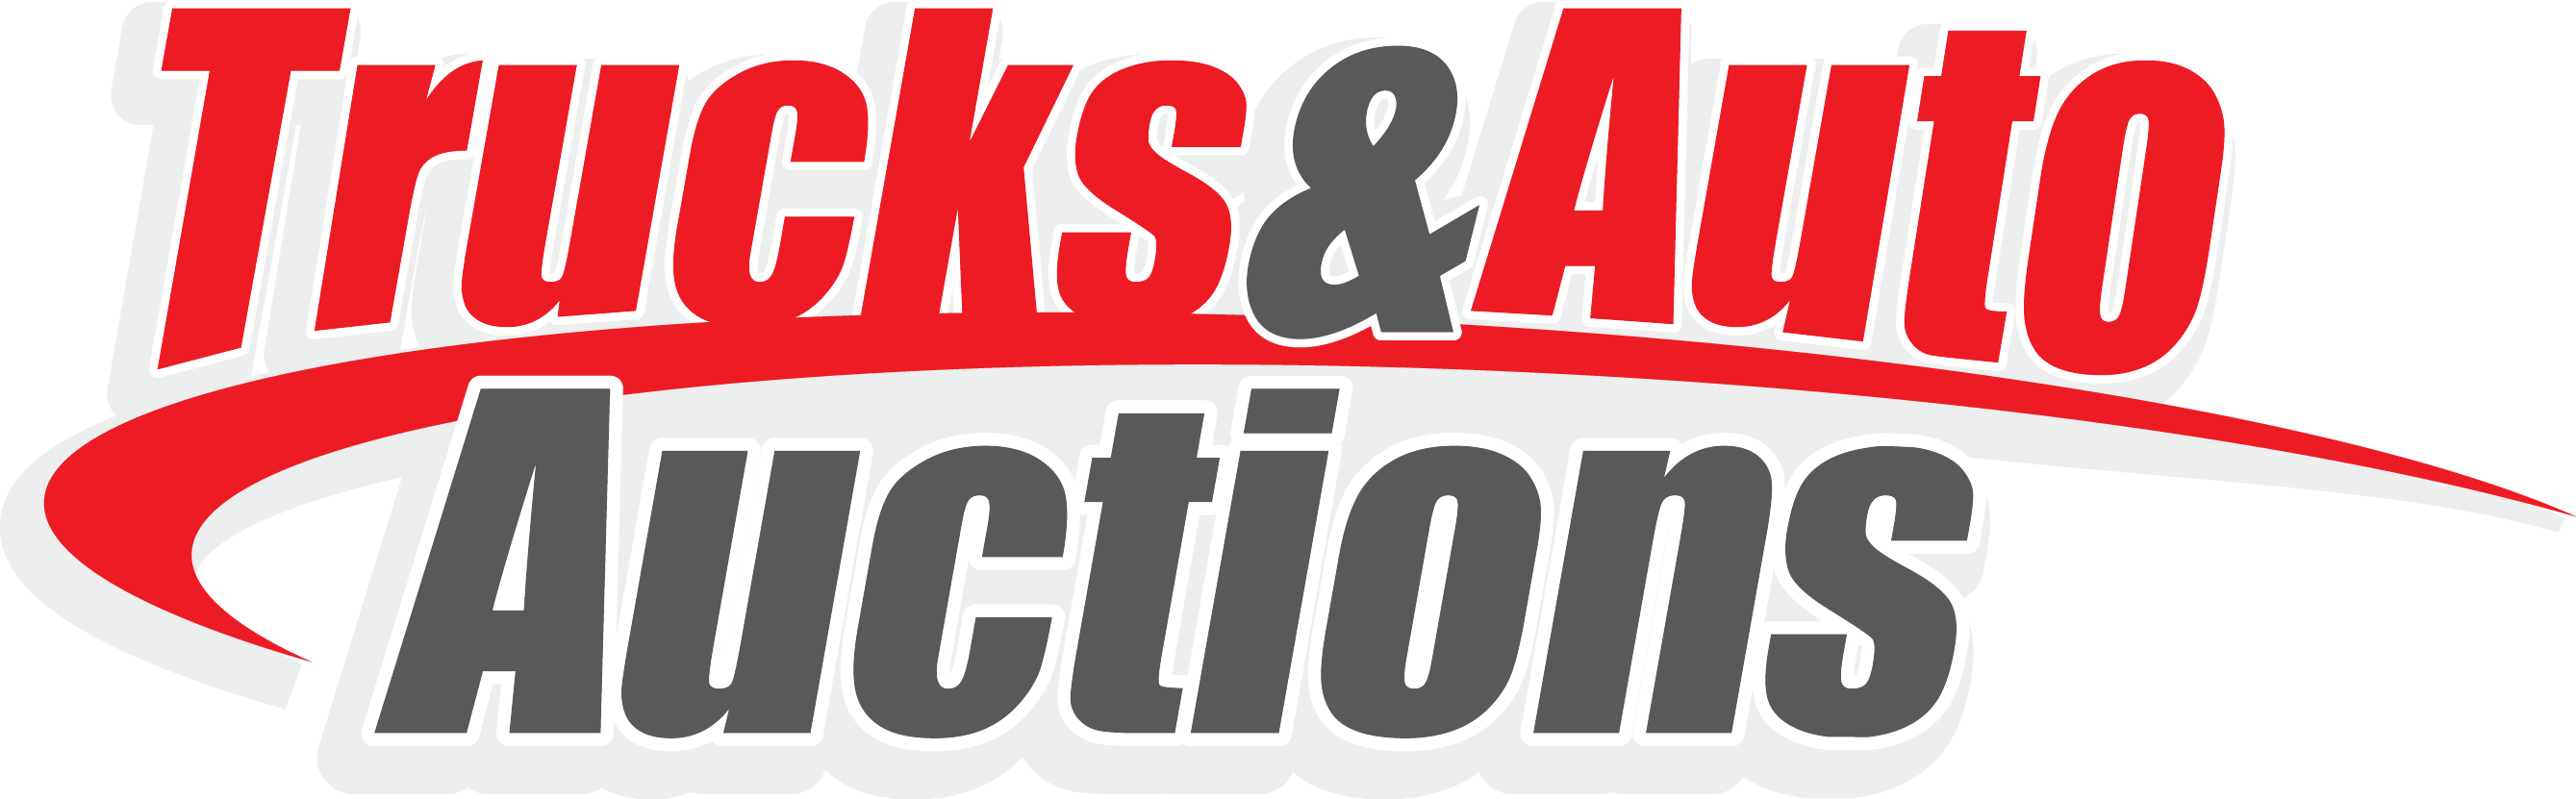 Trucks & Auto Auctions